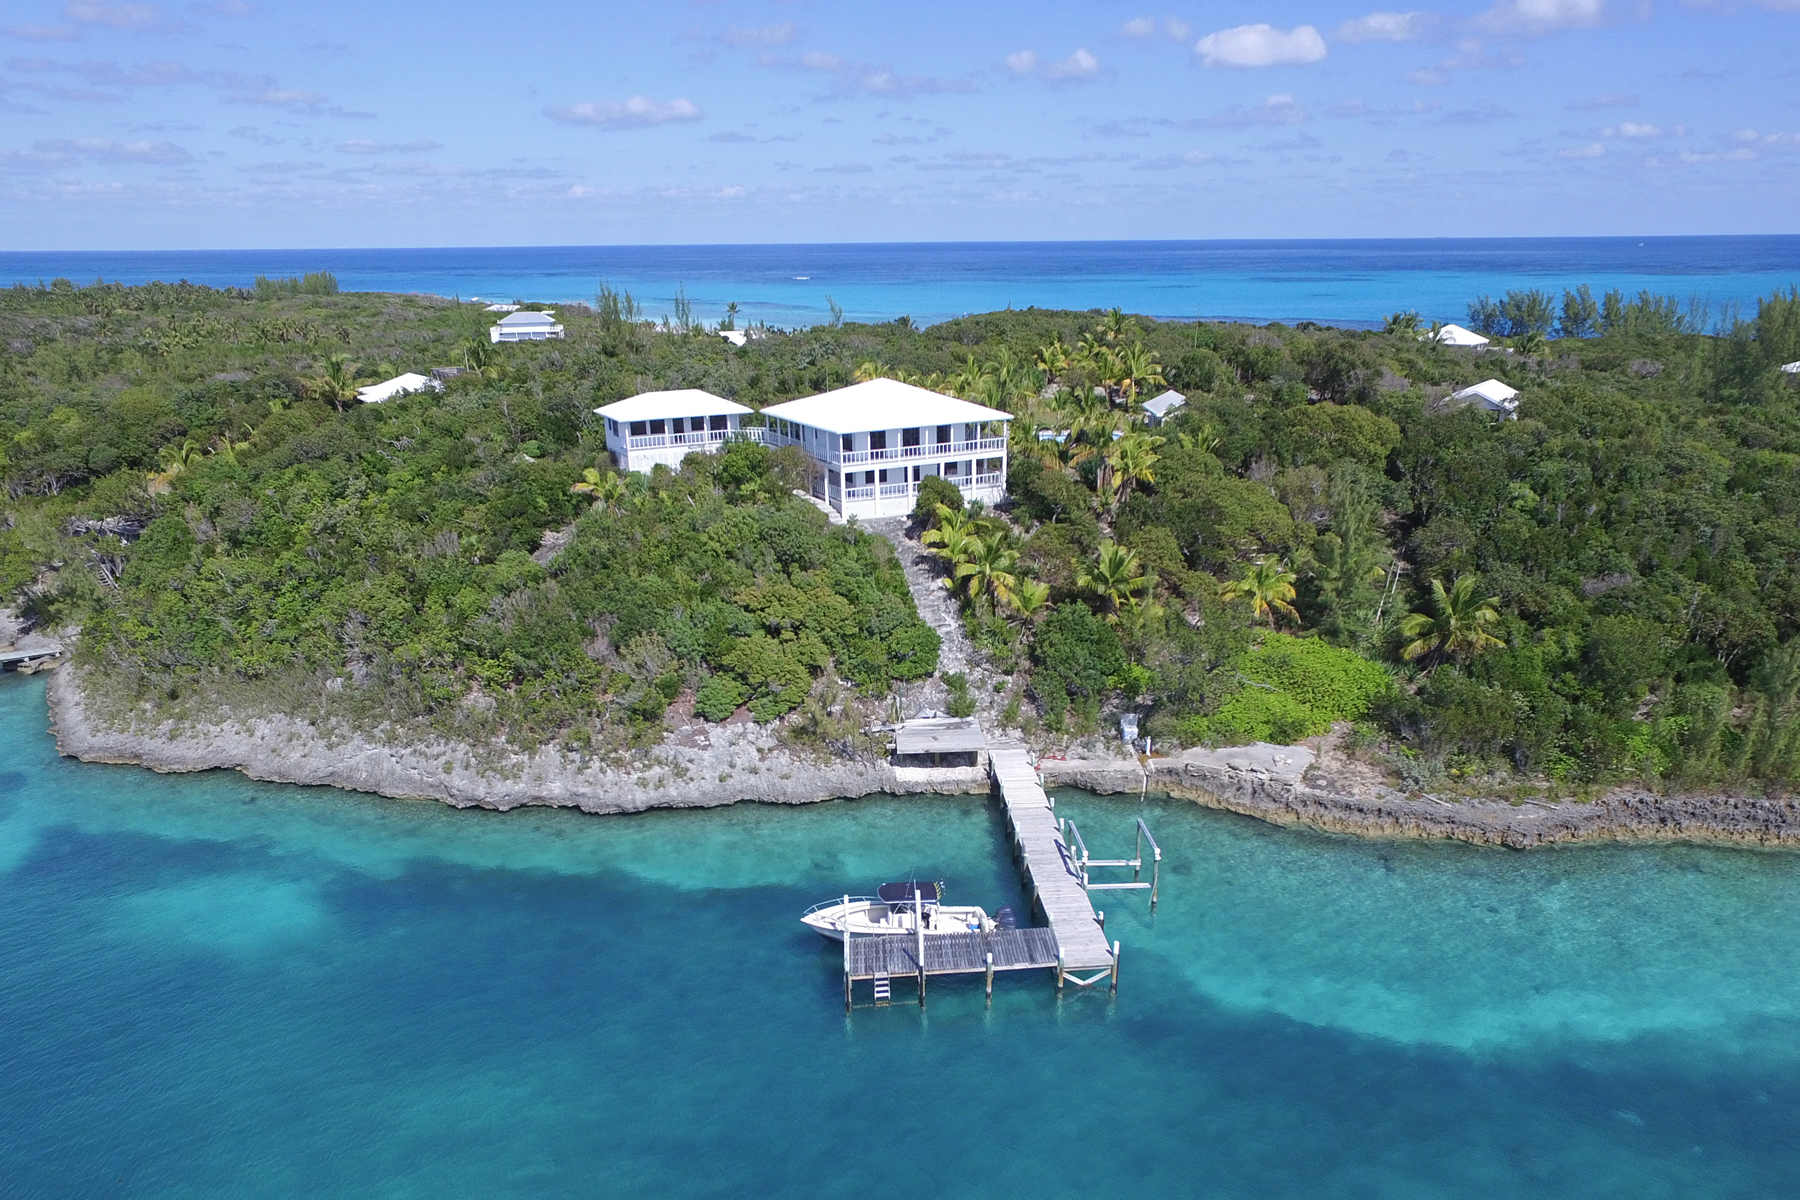 Single Family Home for Sale at Ridge Runner Guana Cay, Abaco Bahamas